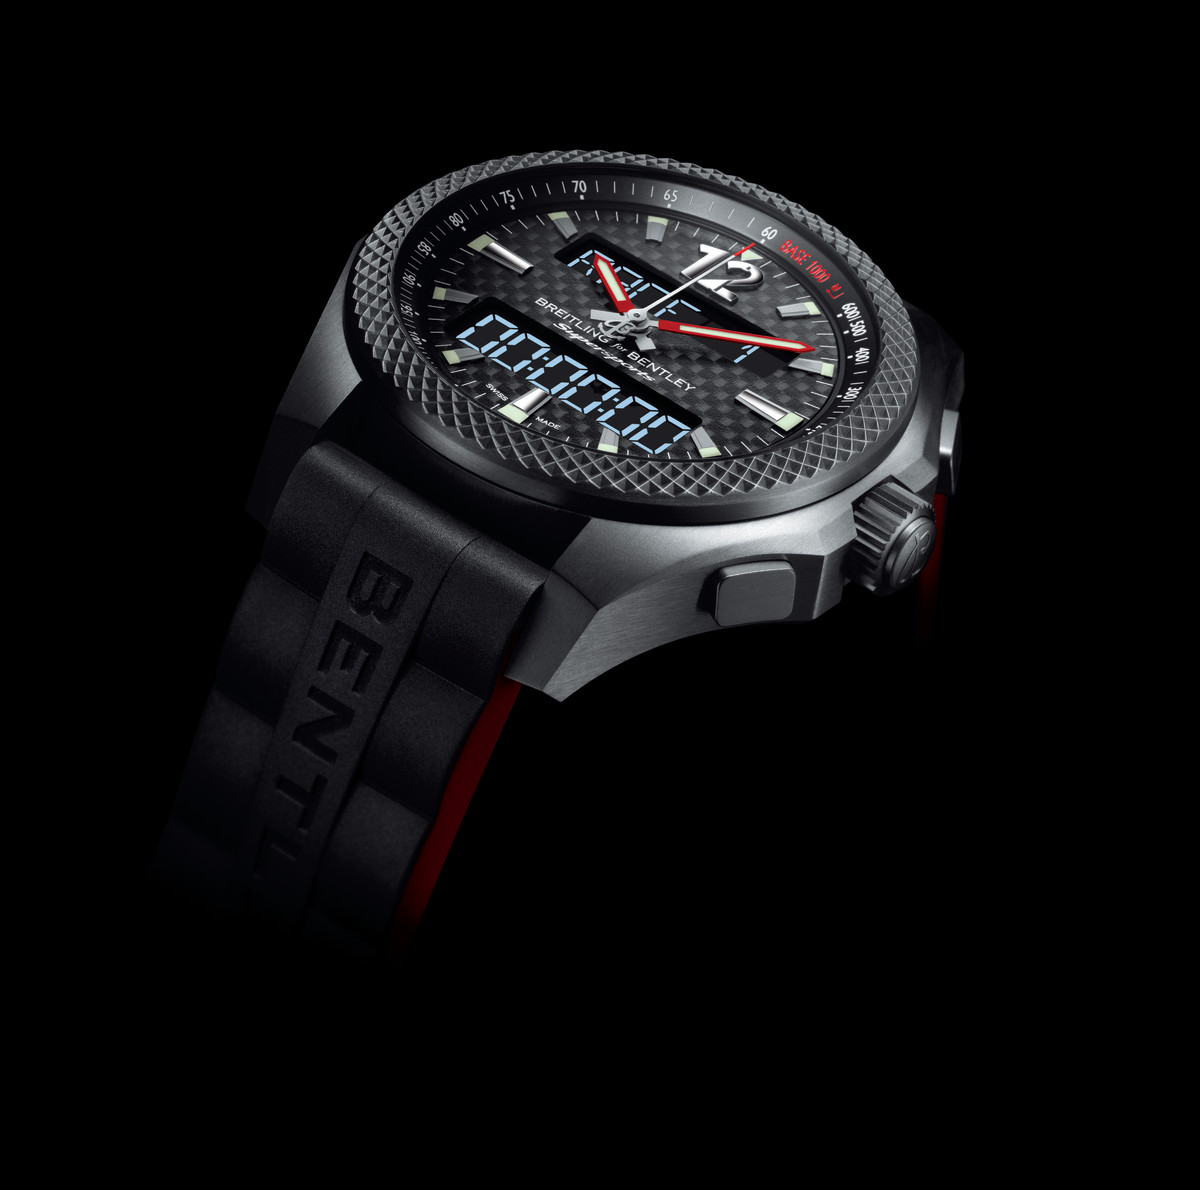 Breitling Supertsports B55 Watch